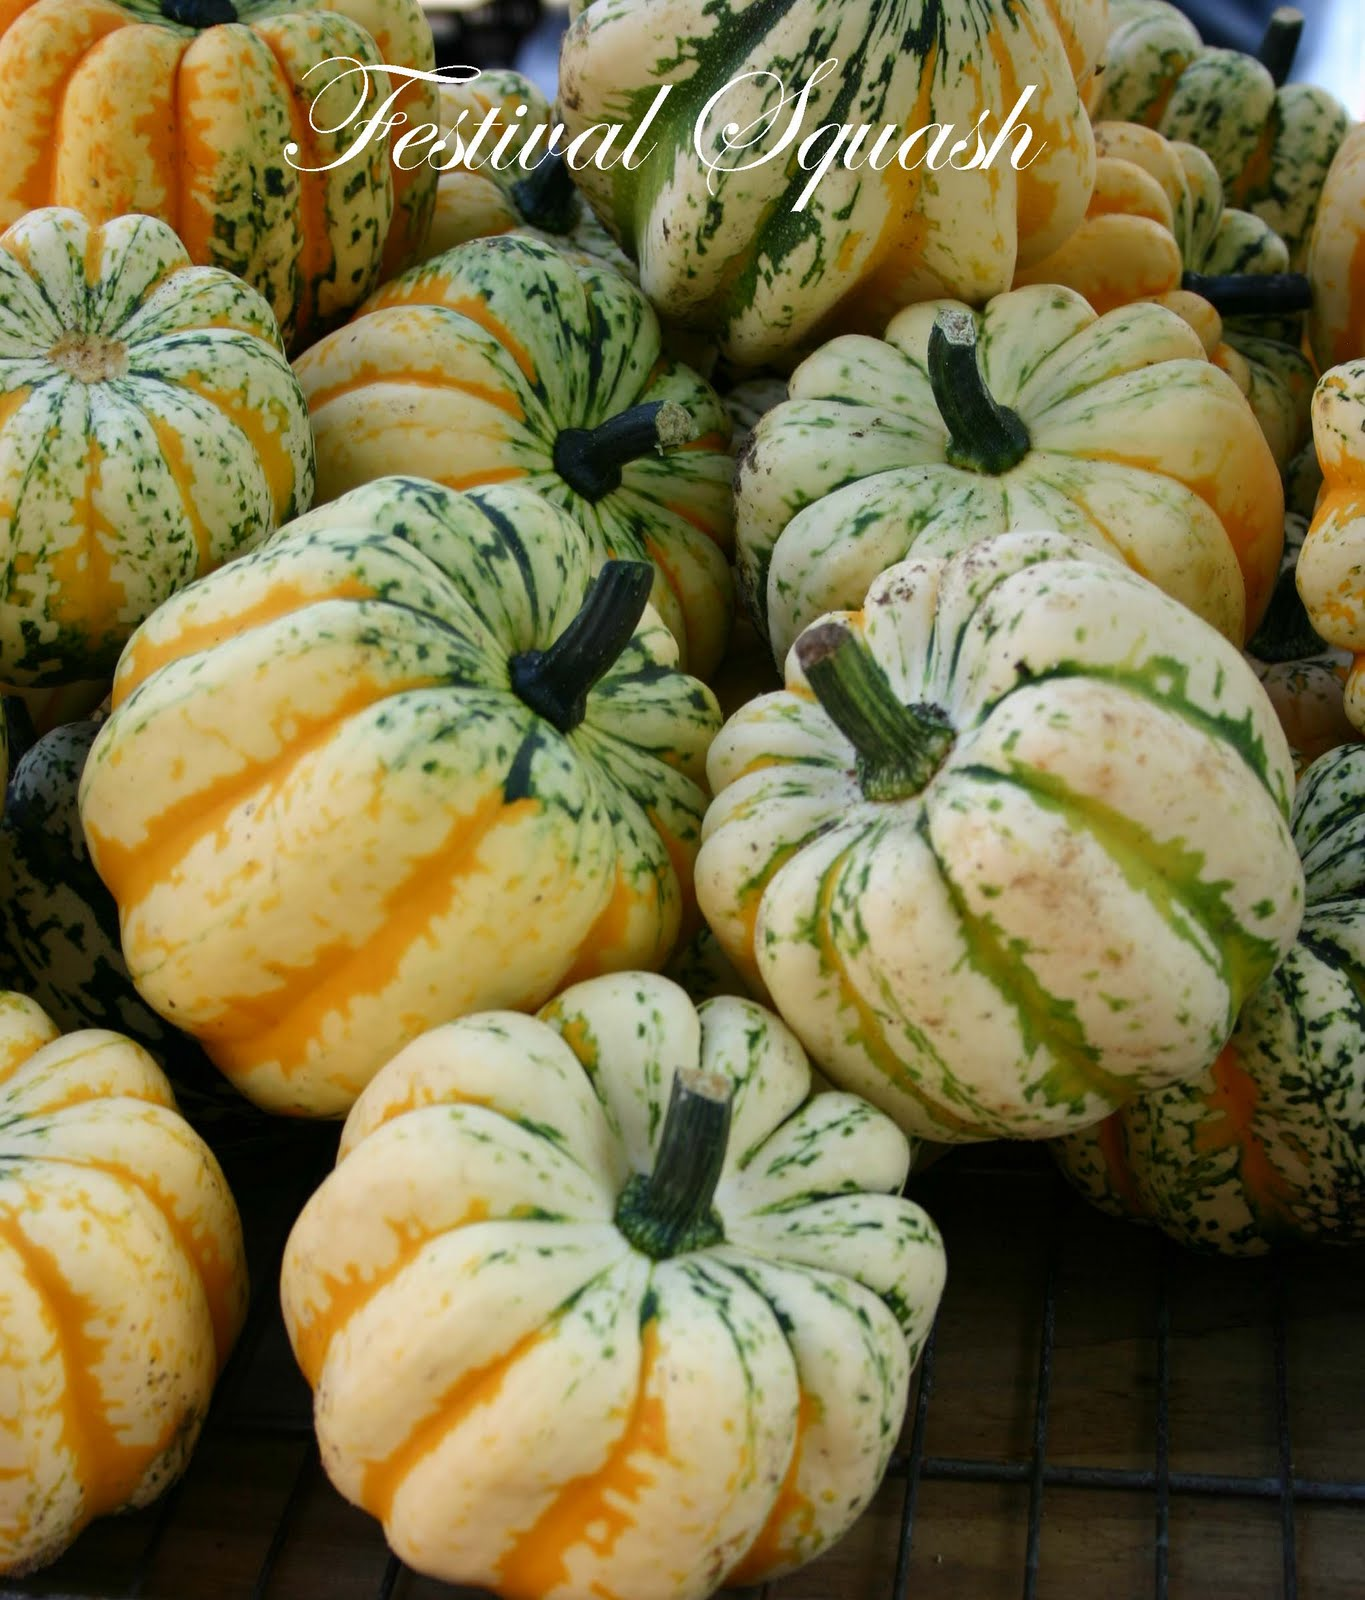 A FARMERS MARKET JOURNEY: EYE CANDY AT THE MARKET